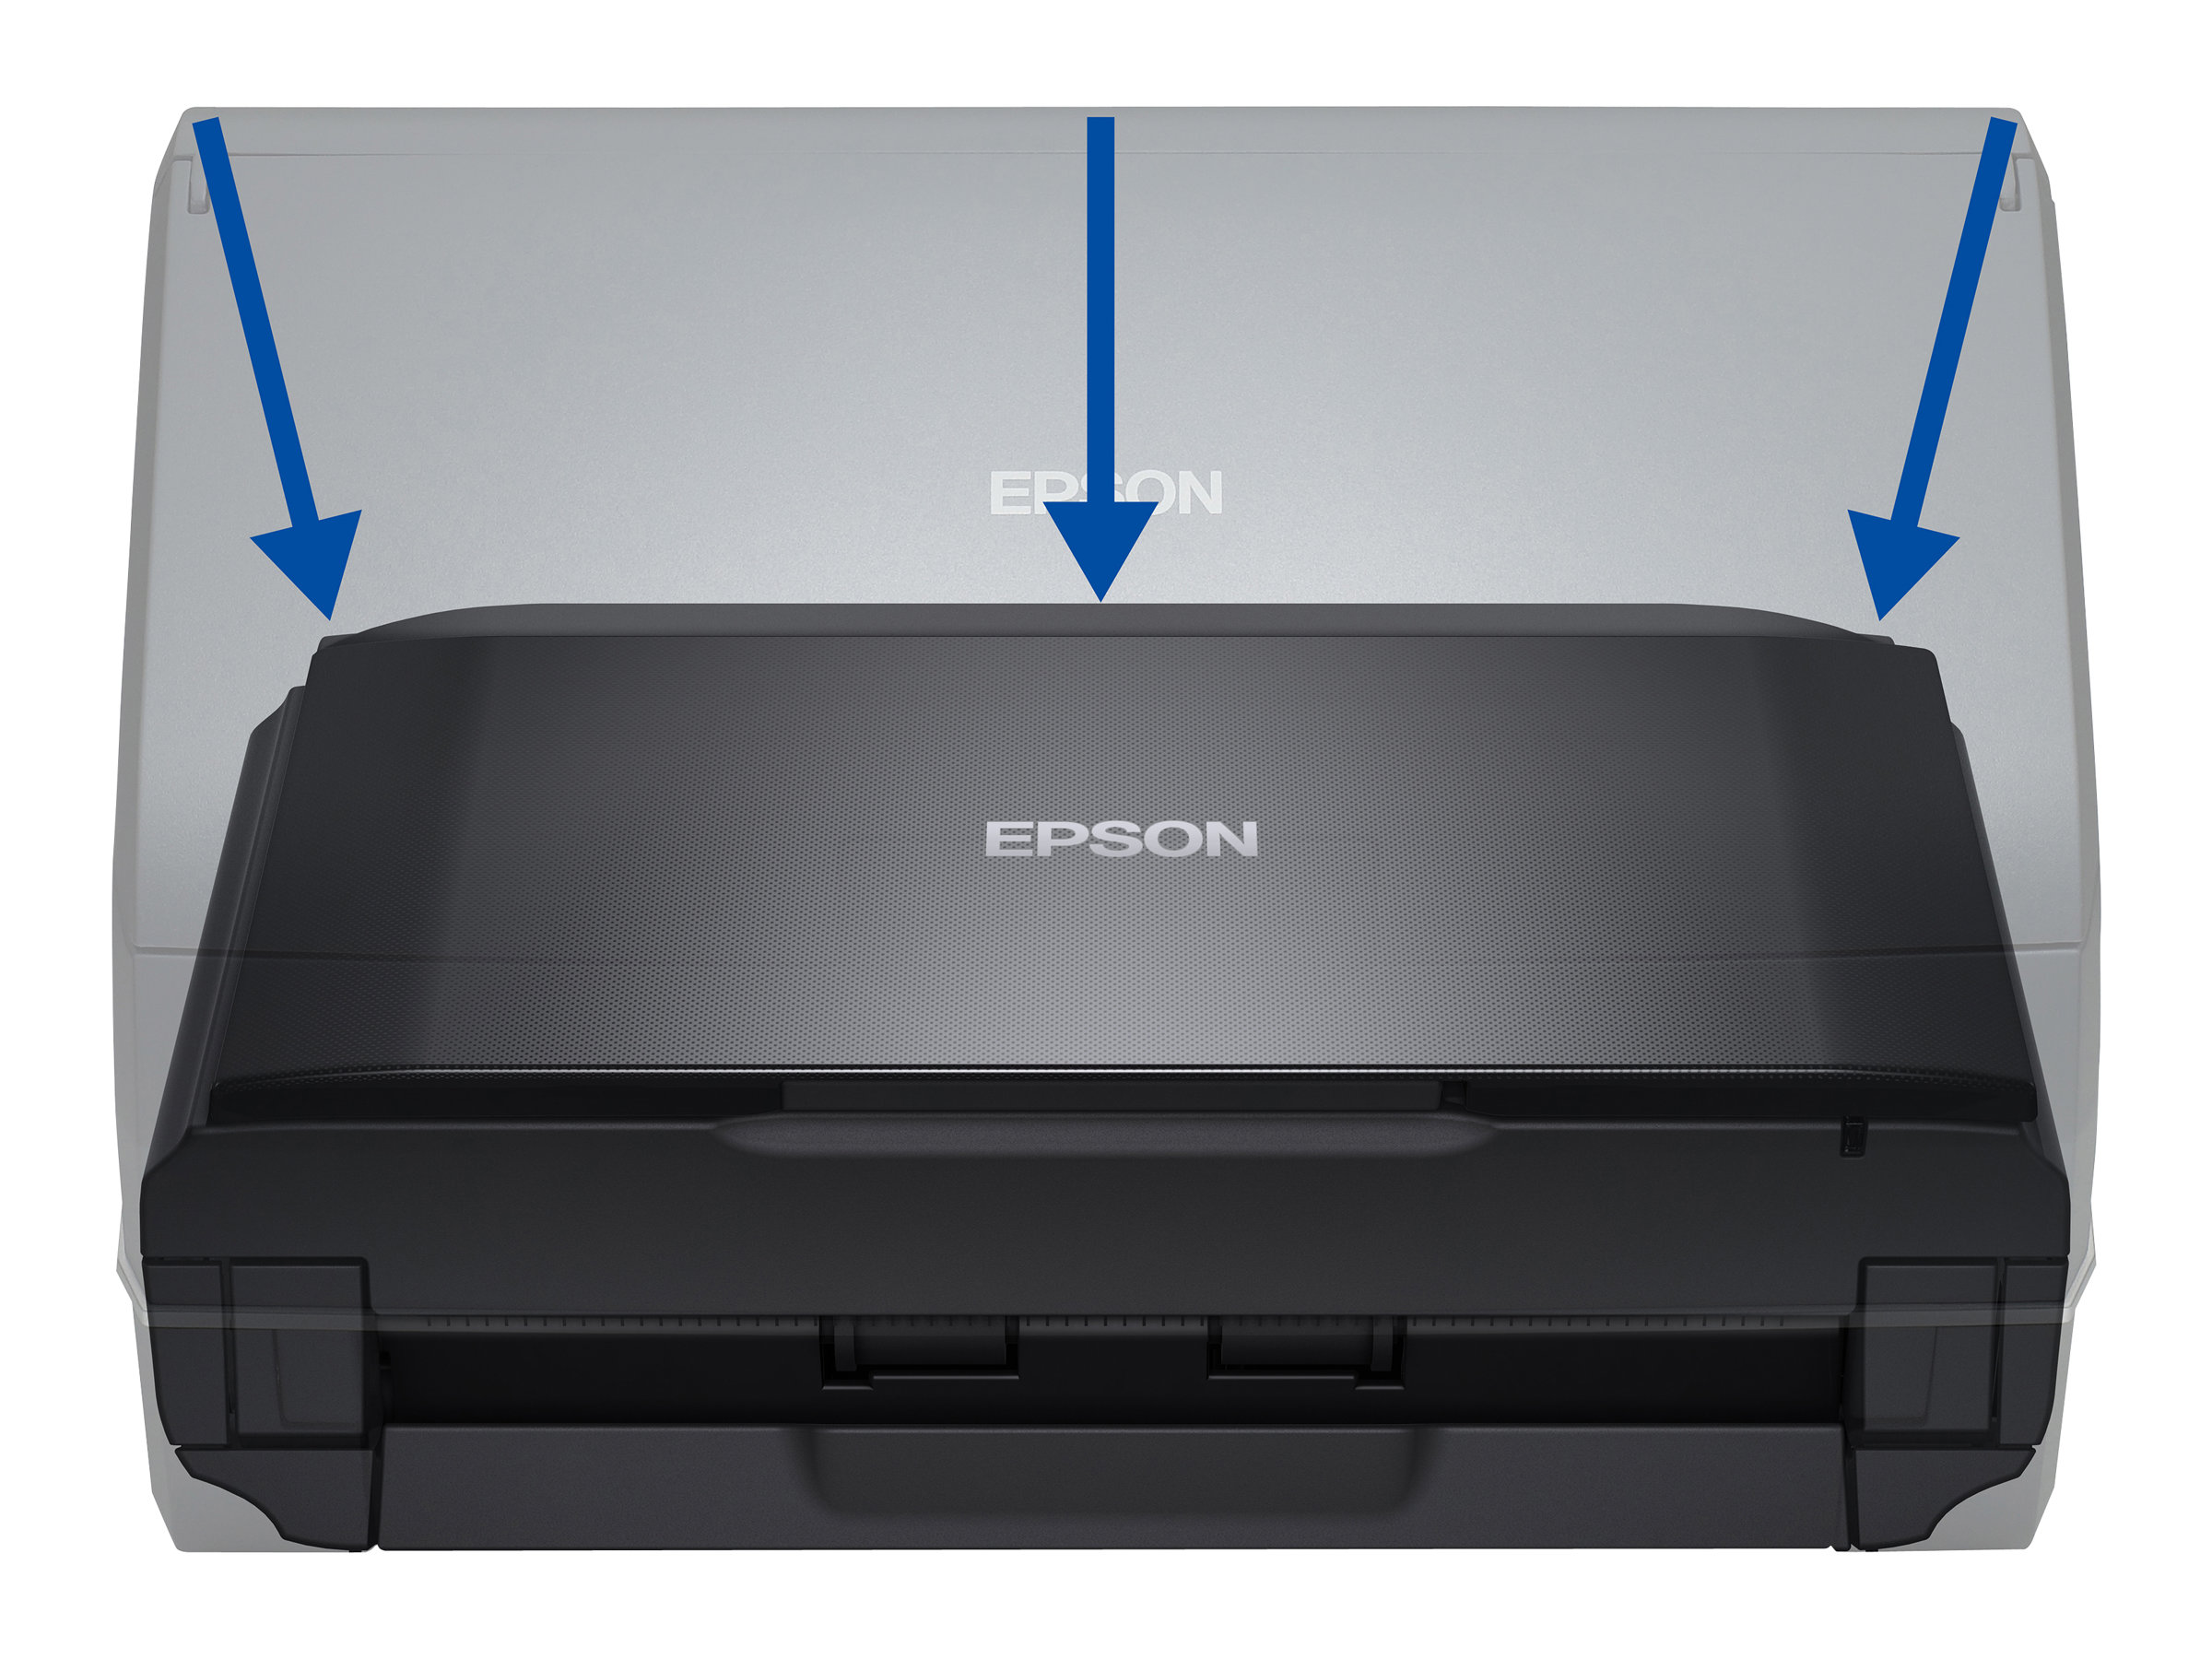 Epson WorkForce DS-520 Document Scanner, B11B234201